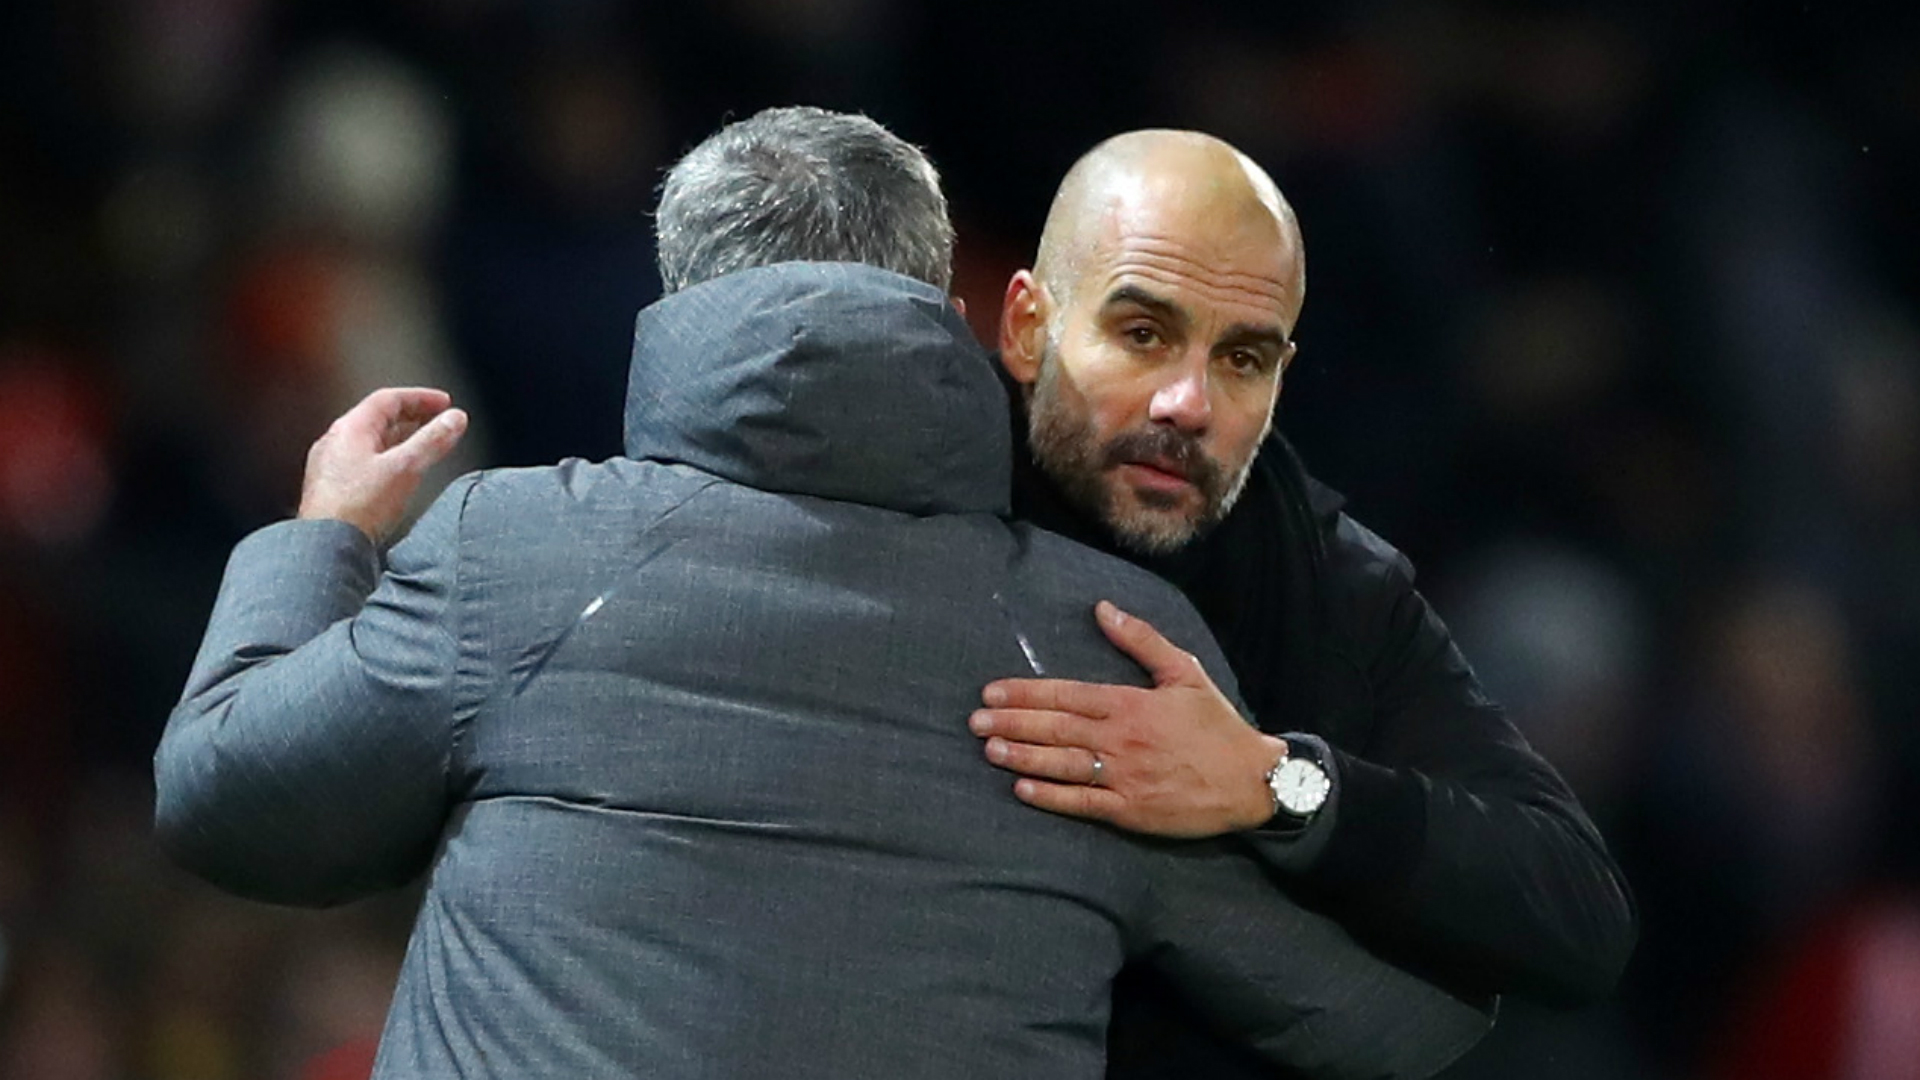 We are both good guys - Guardiola happy to bury Mourinho rows